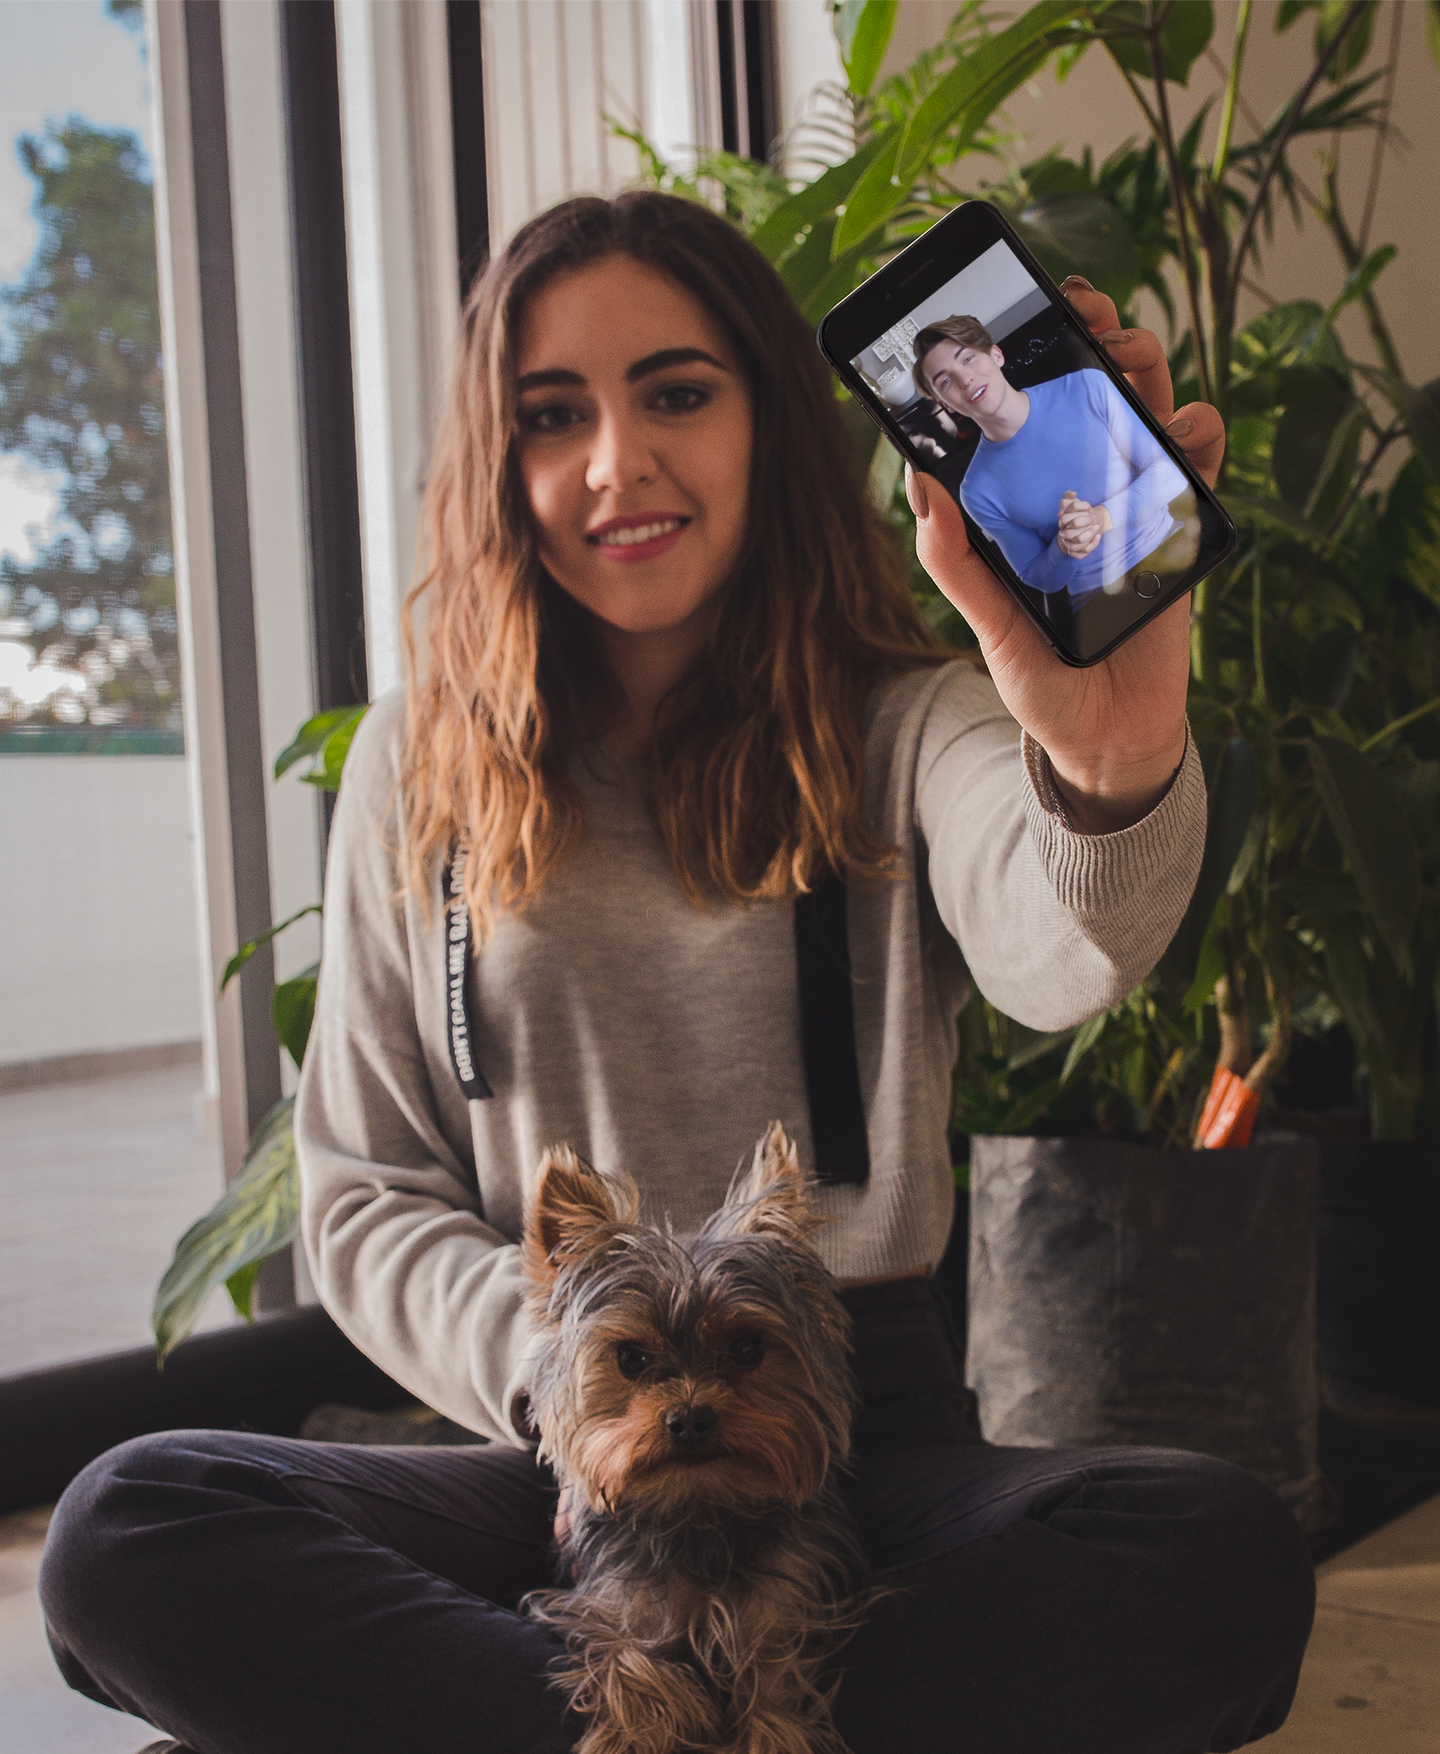 woman-sitting-with-her-dog-holding-a-black-iphone-mockup-a19639.png